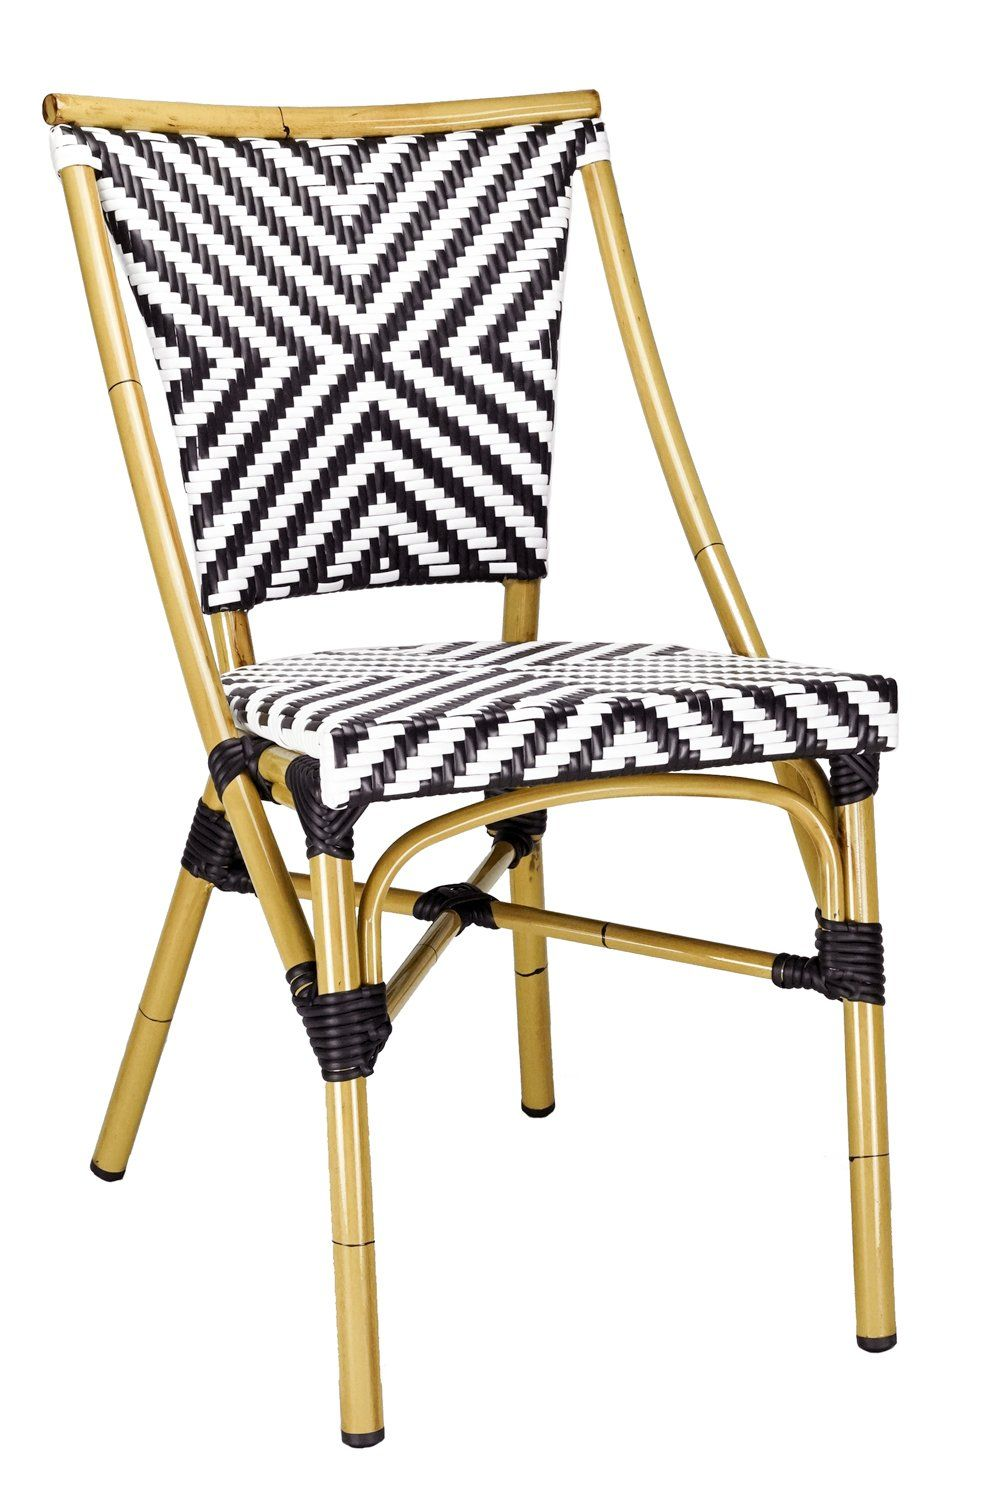 Strike Chair A Classic Synthetic Rattan Weaved Chair Made To